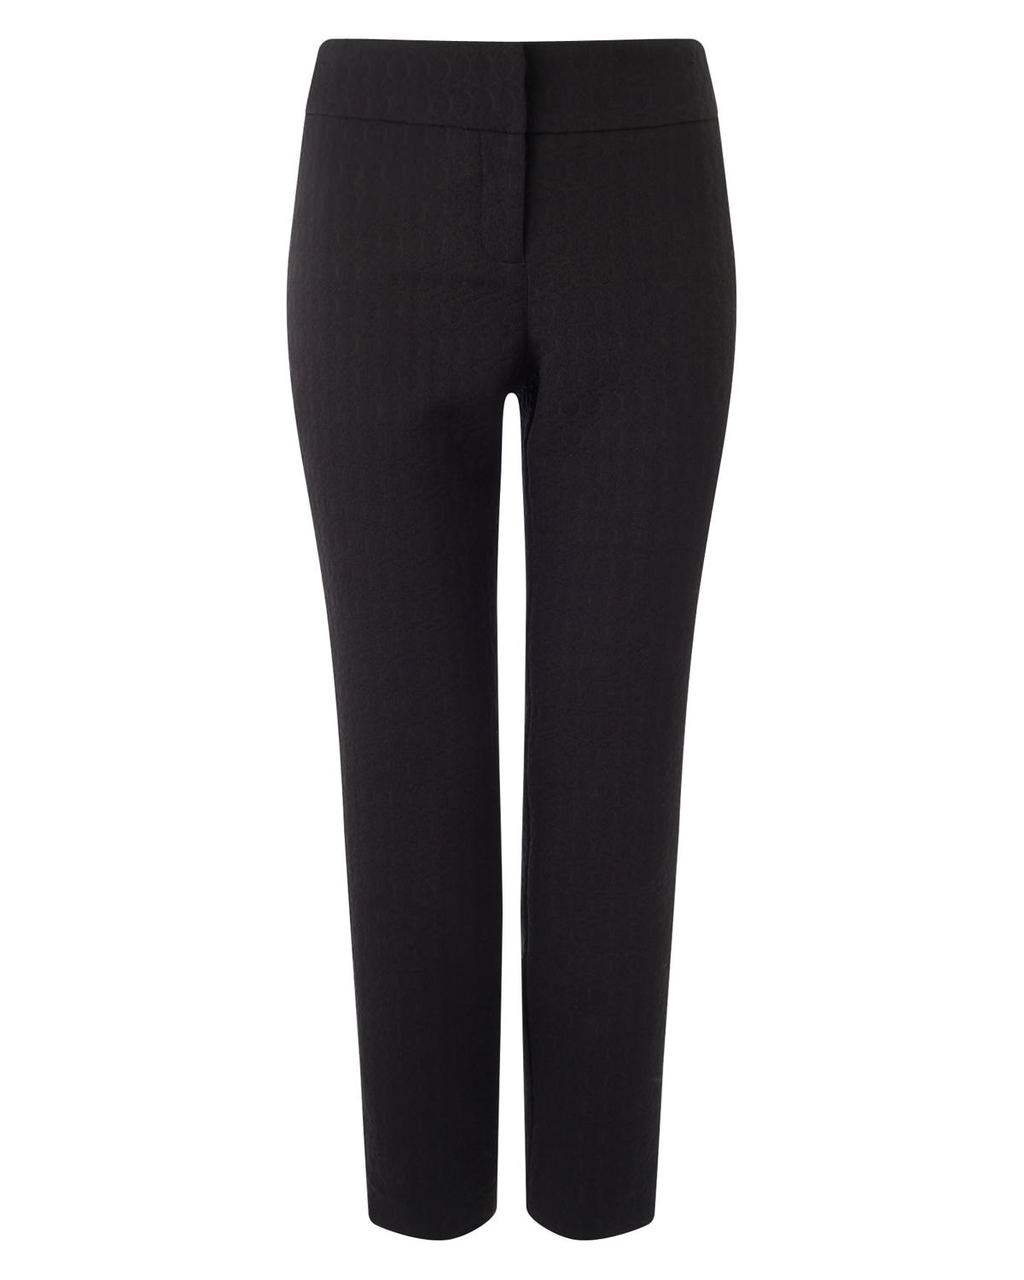 Erica Jacquard Trouser - pattern: plain; waist: mid/regular rise; predominant colour: black; length: ankle length; fibres: polyester/polyamide - stretch; fit: straight leg; pattern type: fabric; texture group: brocade/jacquard; style: standard; occasions: creative work; season: a/w 2015; wardrobe: basic